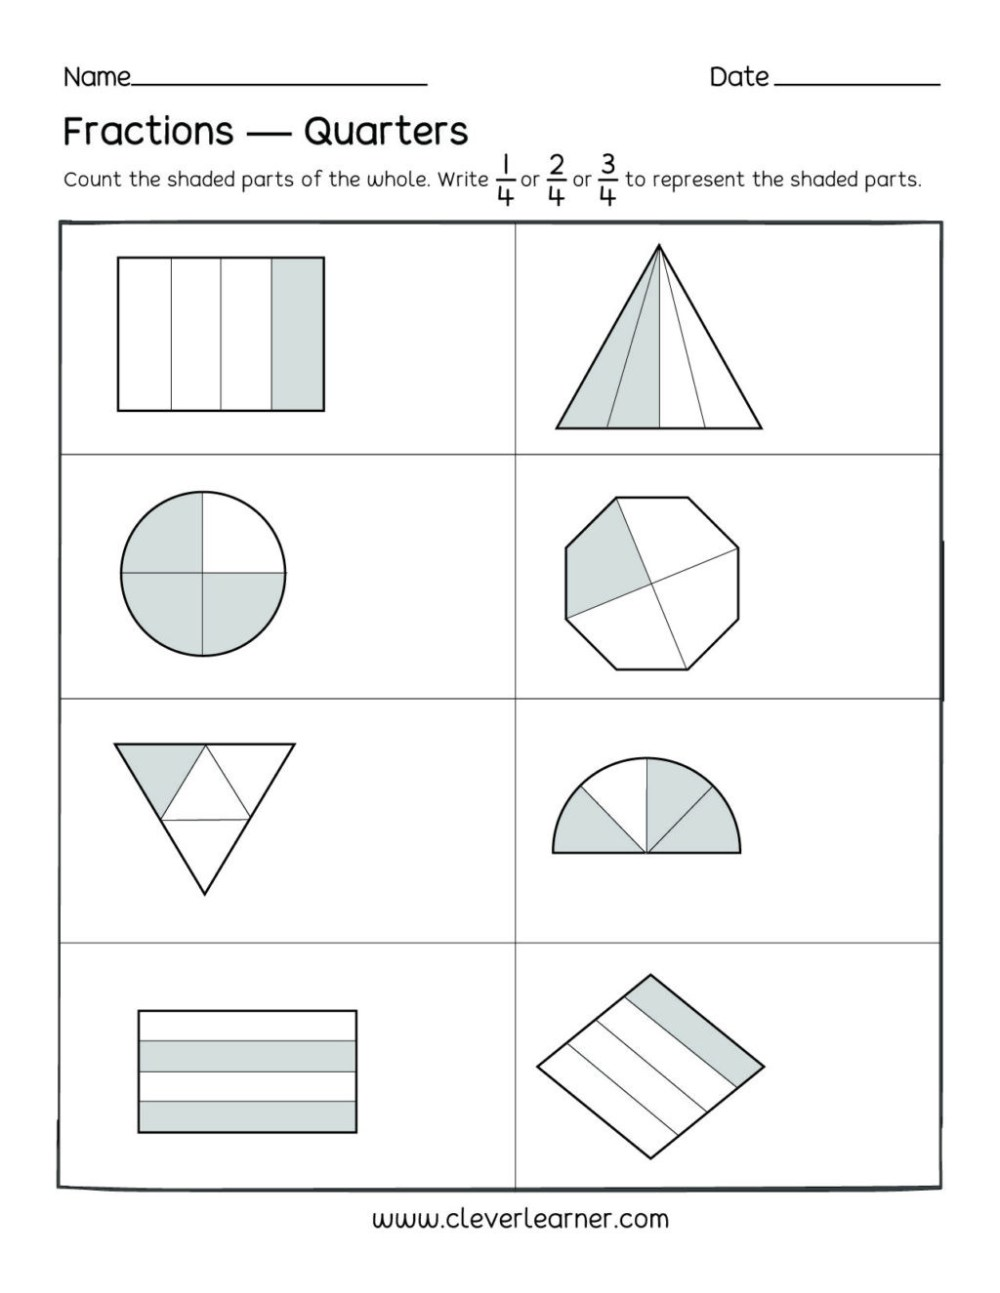 medium resolution of 2nd Grade Adding Fractions Worksheet   Printable Worksheets and Activities  for Teachers